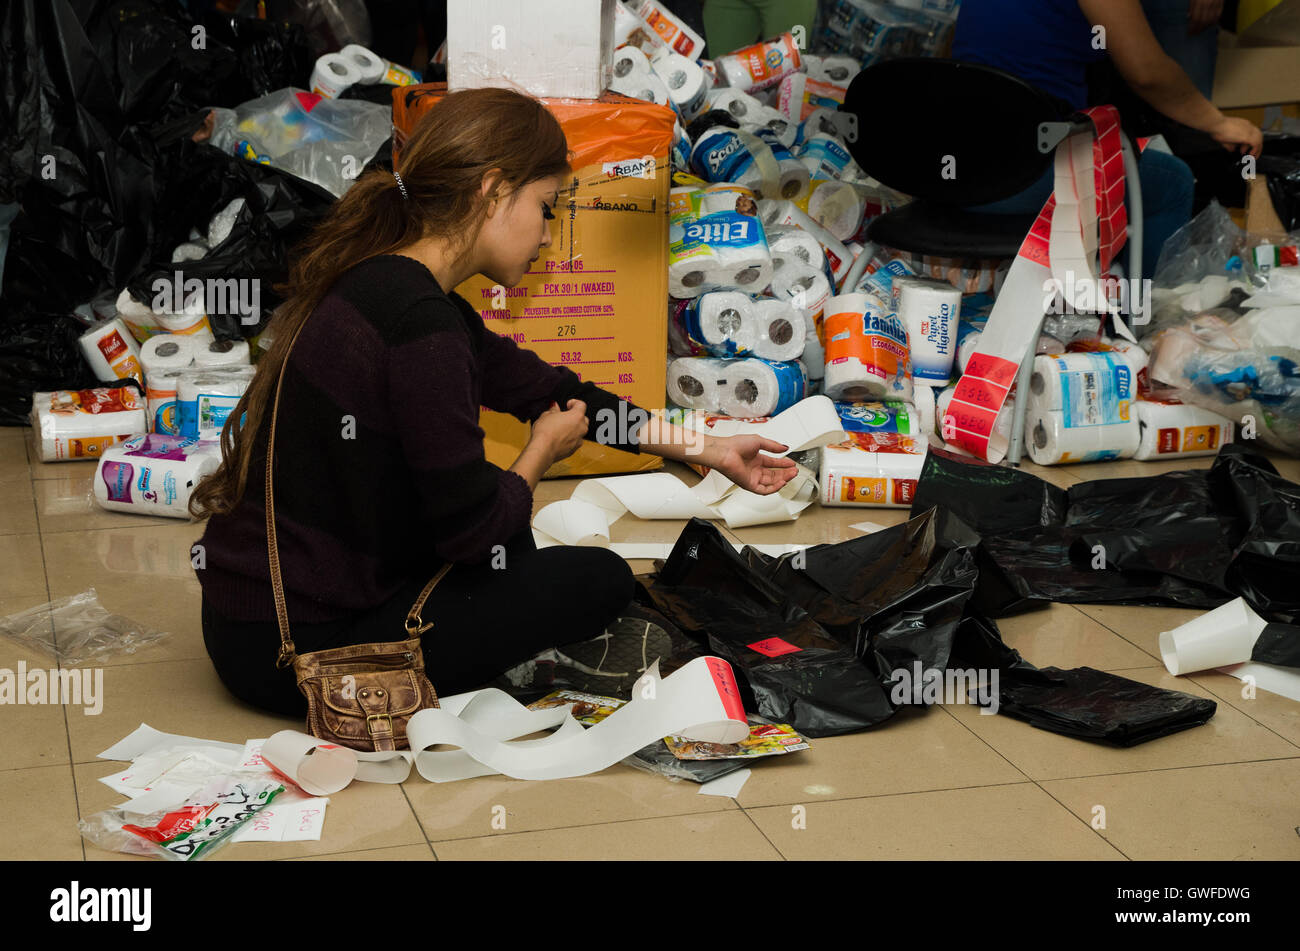 Quito, Ecuador - April 23, 2016: Unidentified citizens of Quito providing disaster relief food, clothes, medicine - Stock Image